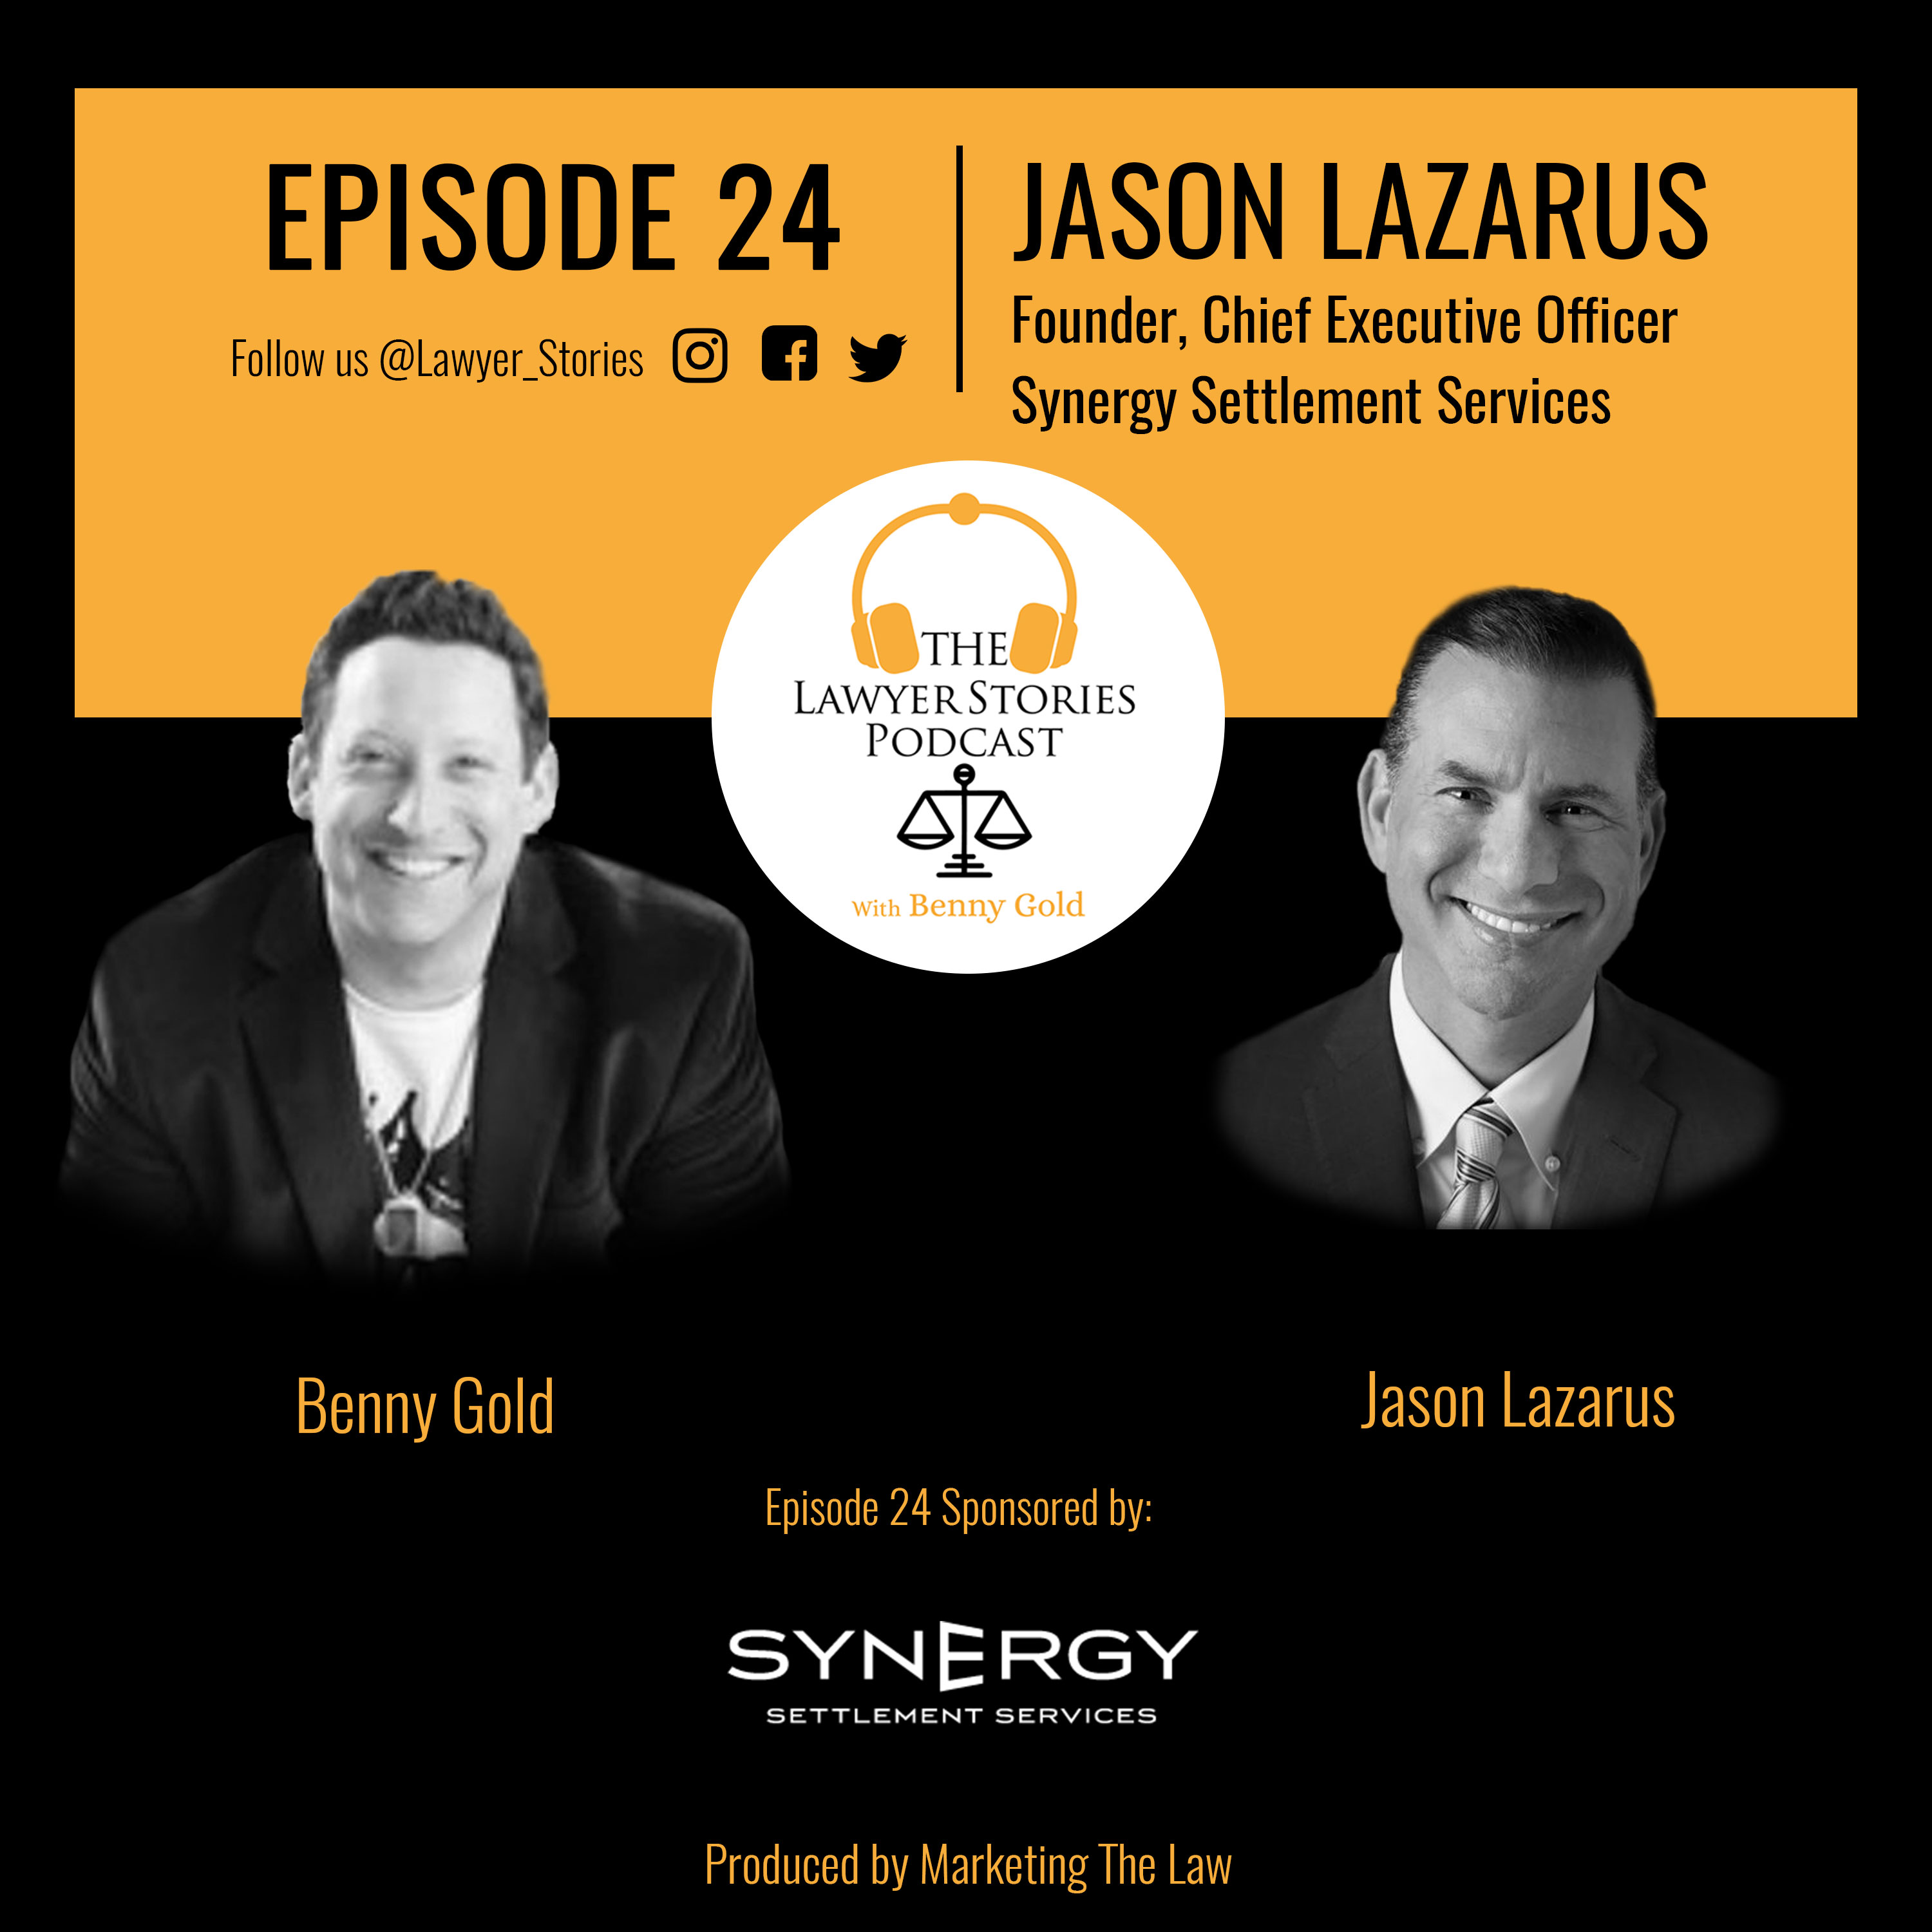 The Lawyer Stories Podcast Episode 24, featuring Jason Lazarus.